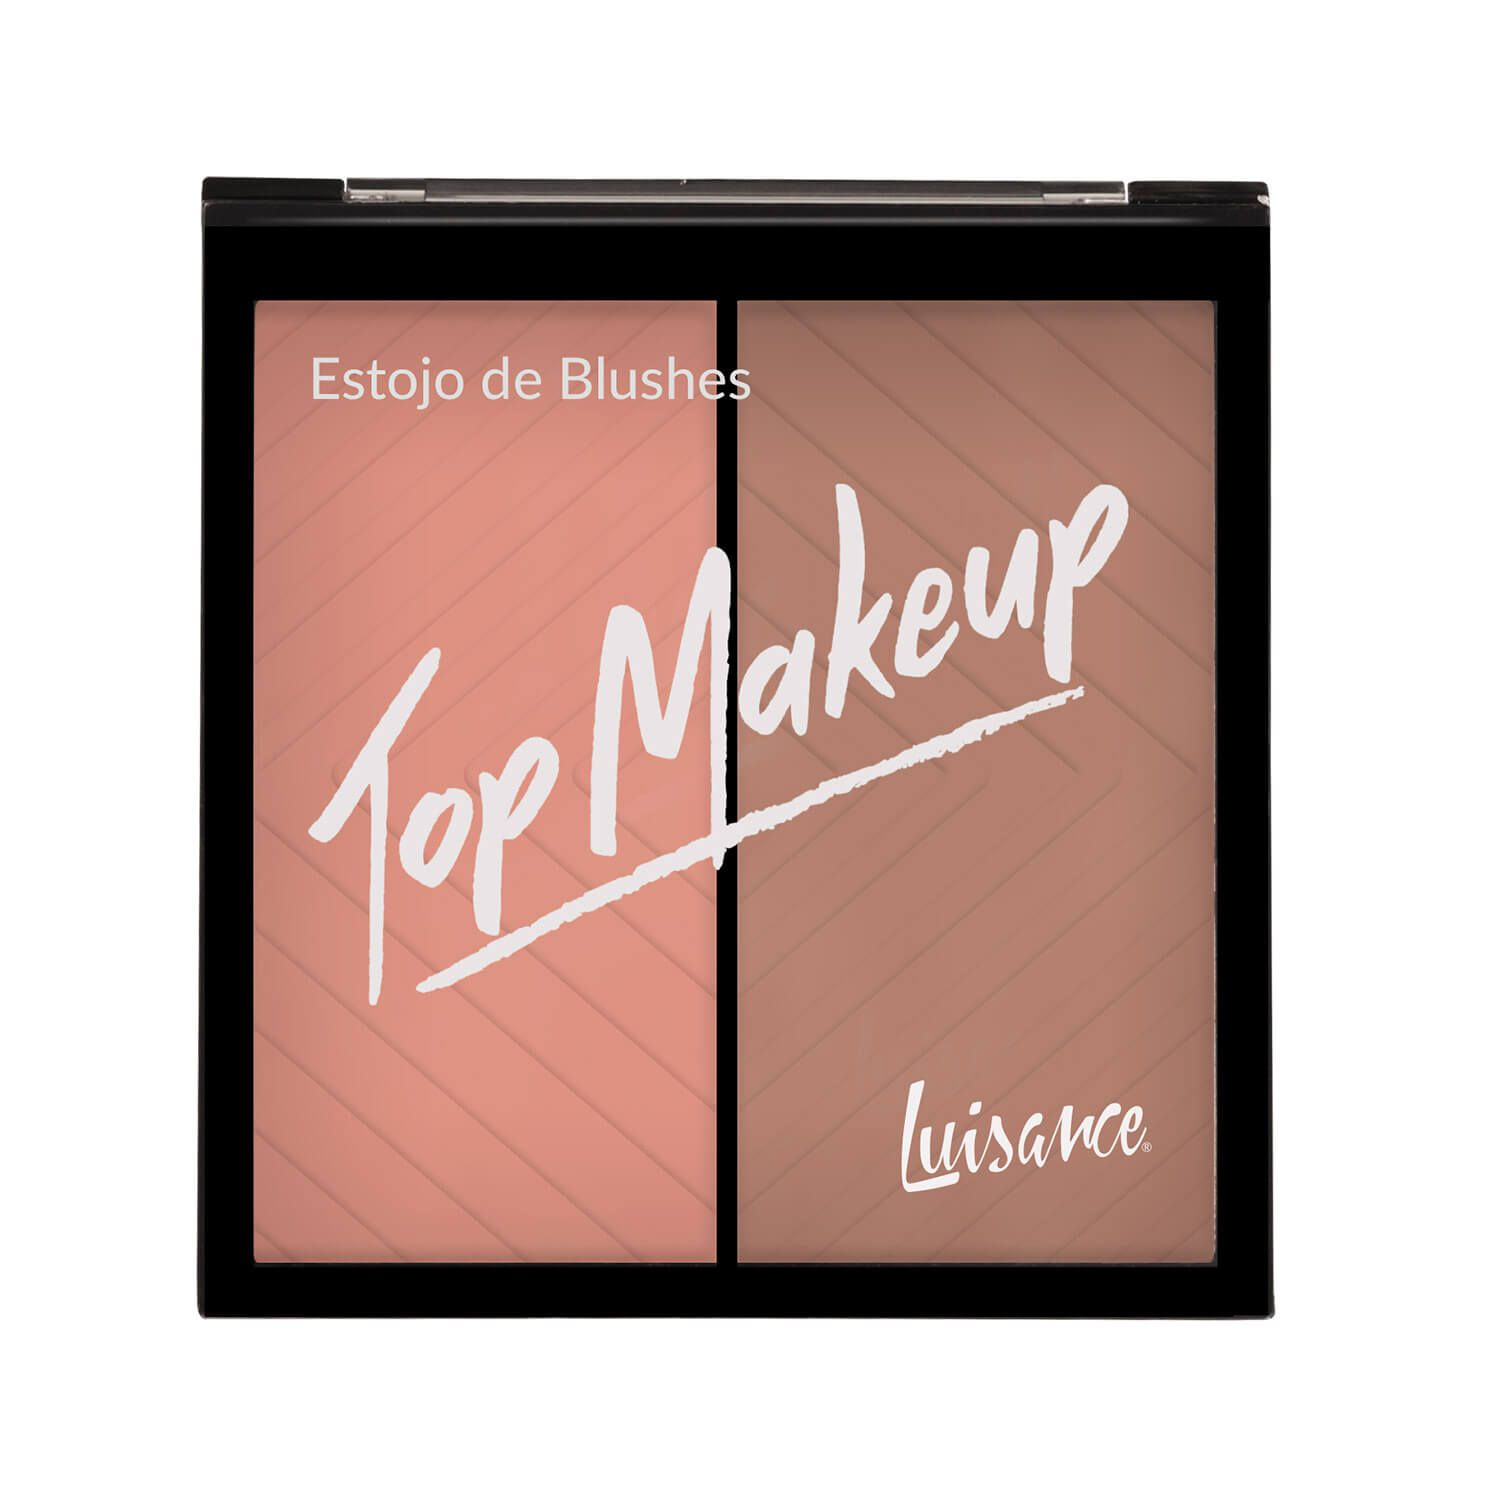 Estojo de Blushes TOP MAKEUP